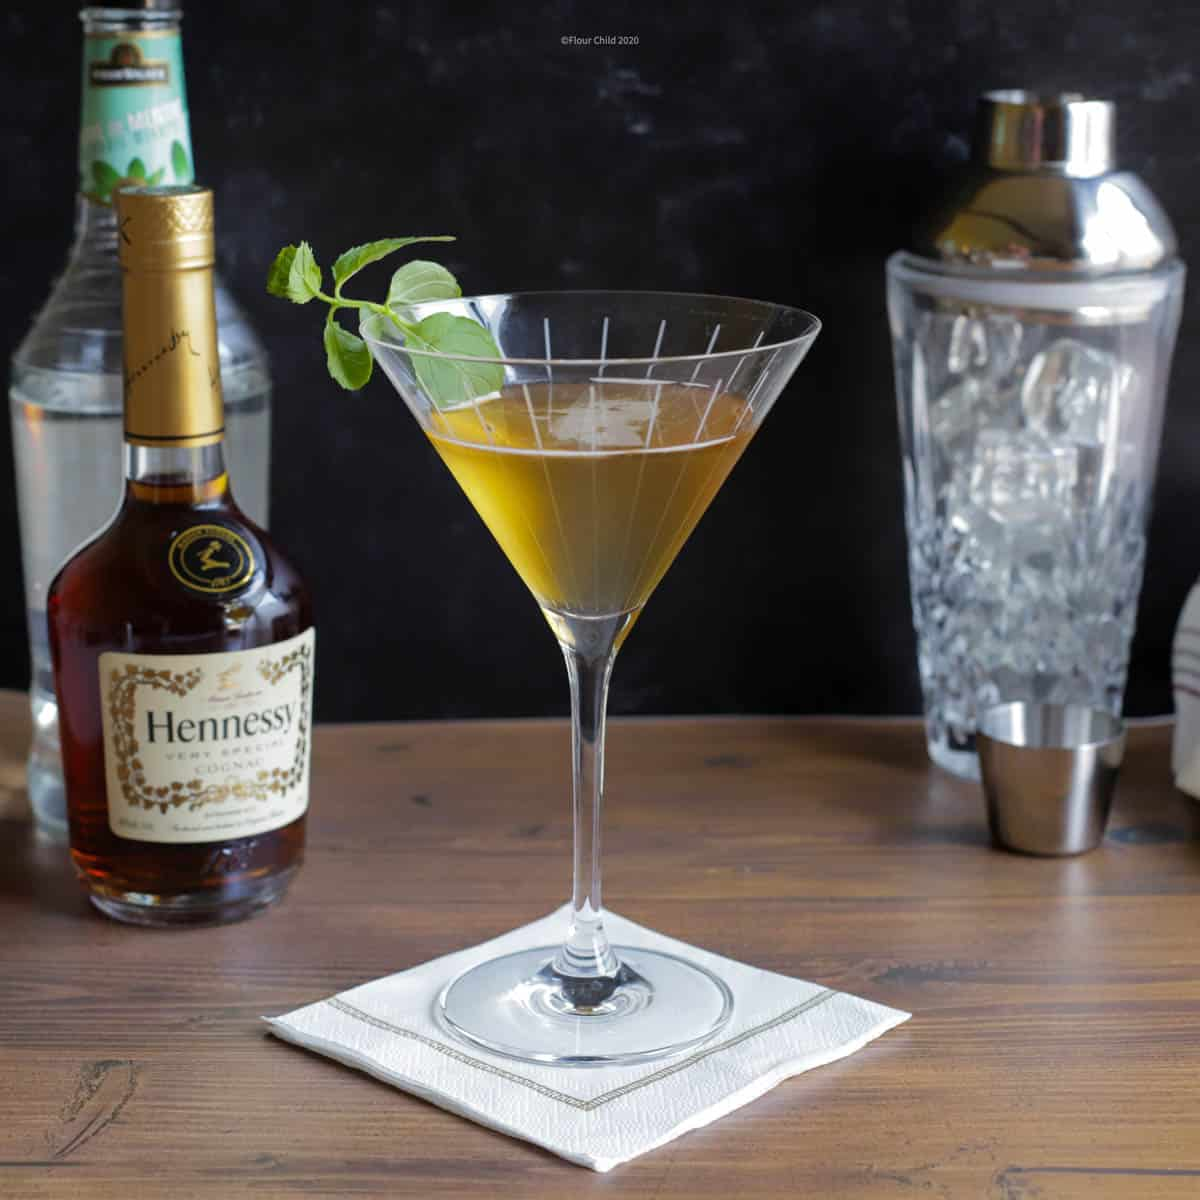 The minty fresh Stinger cocktail is a longtime classic. Using just cognac and Creme de Menthe liqueur you can easily shake up a great drink.